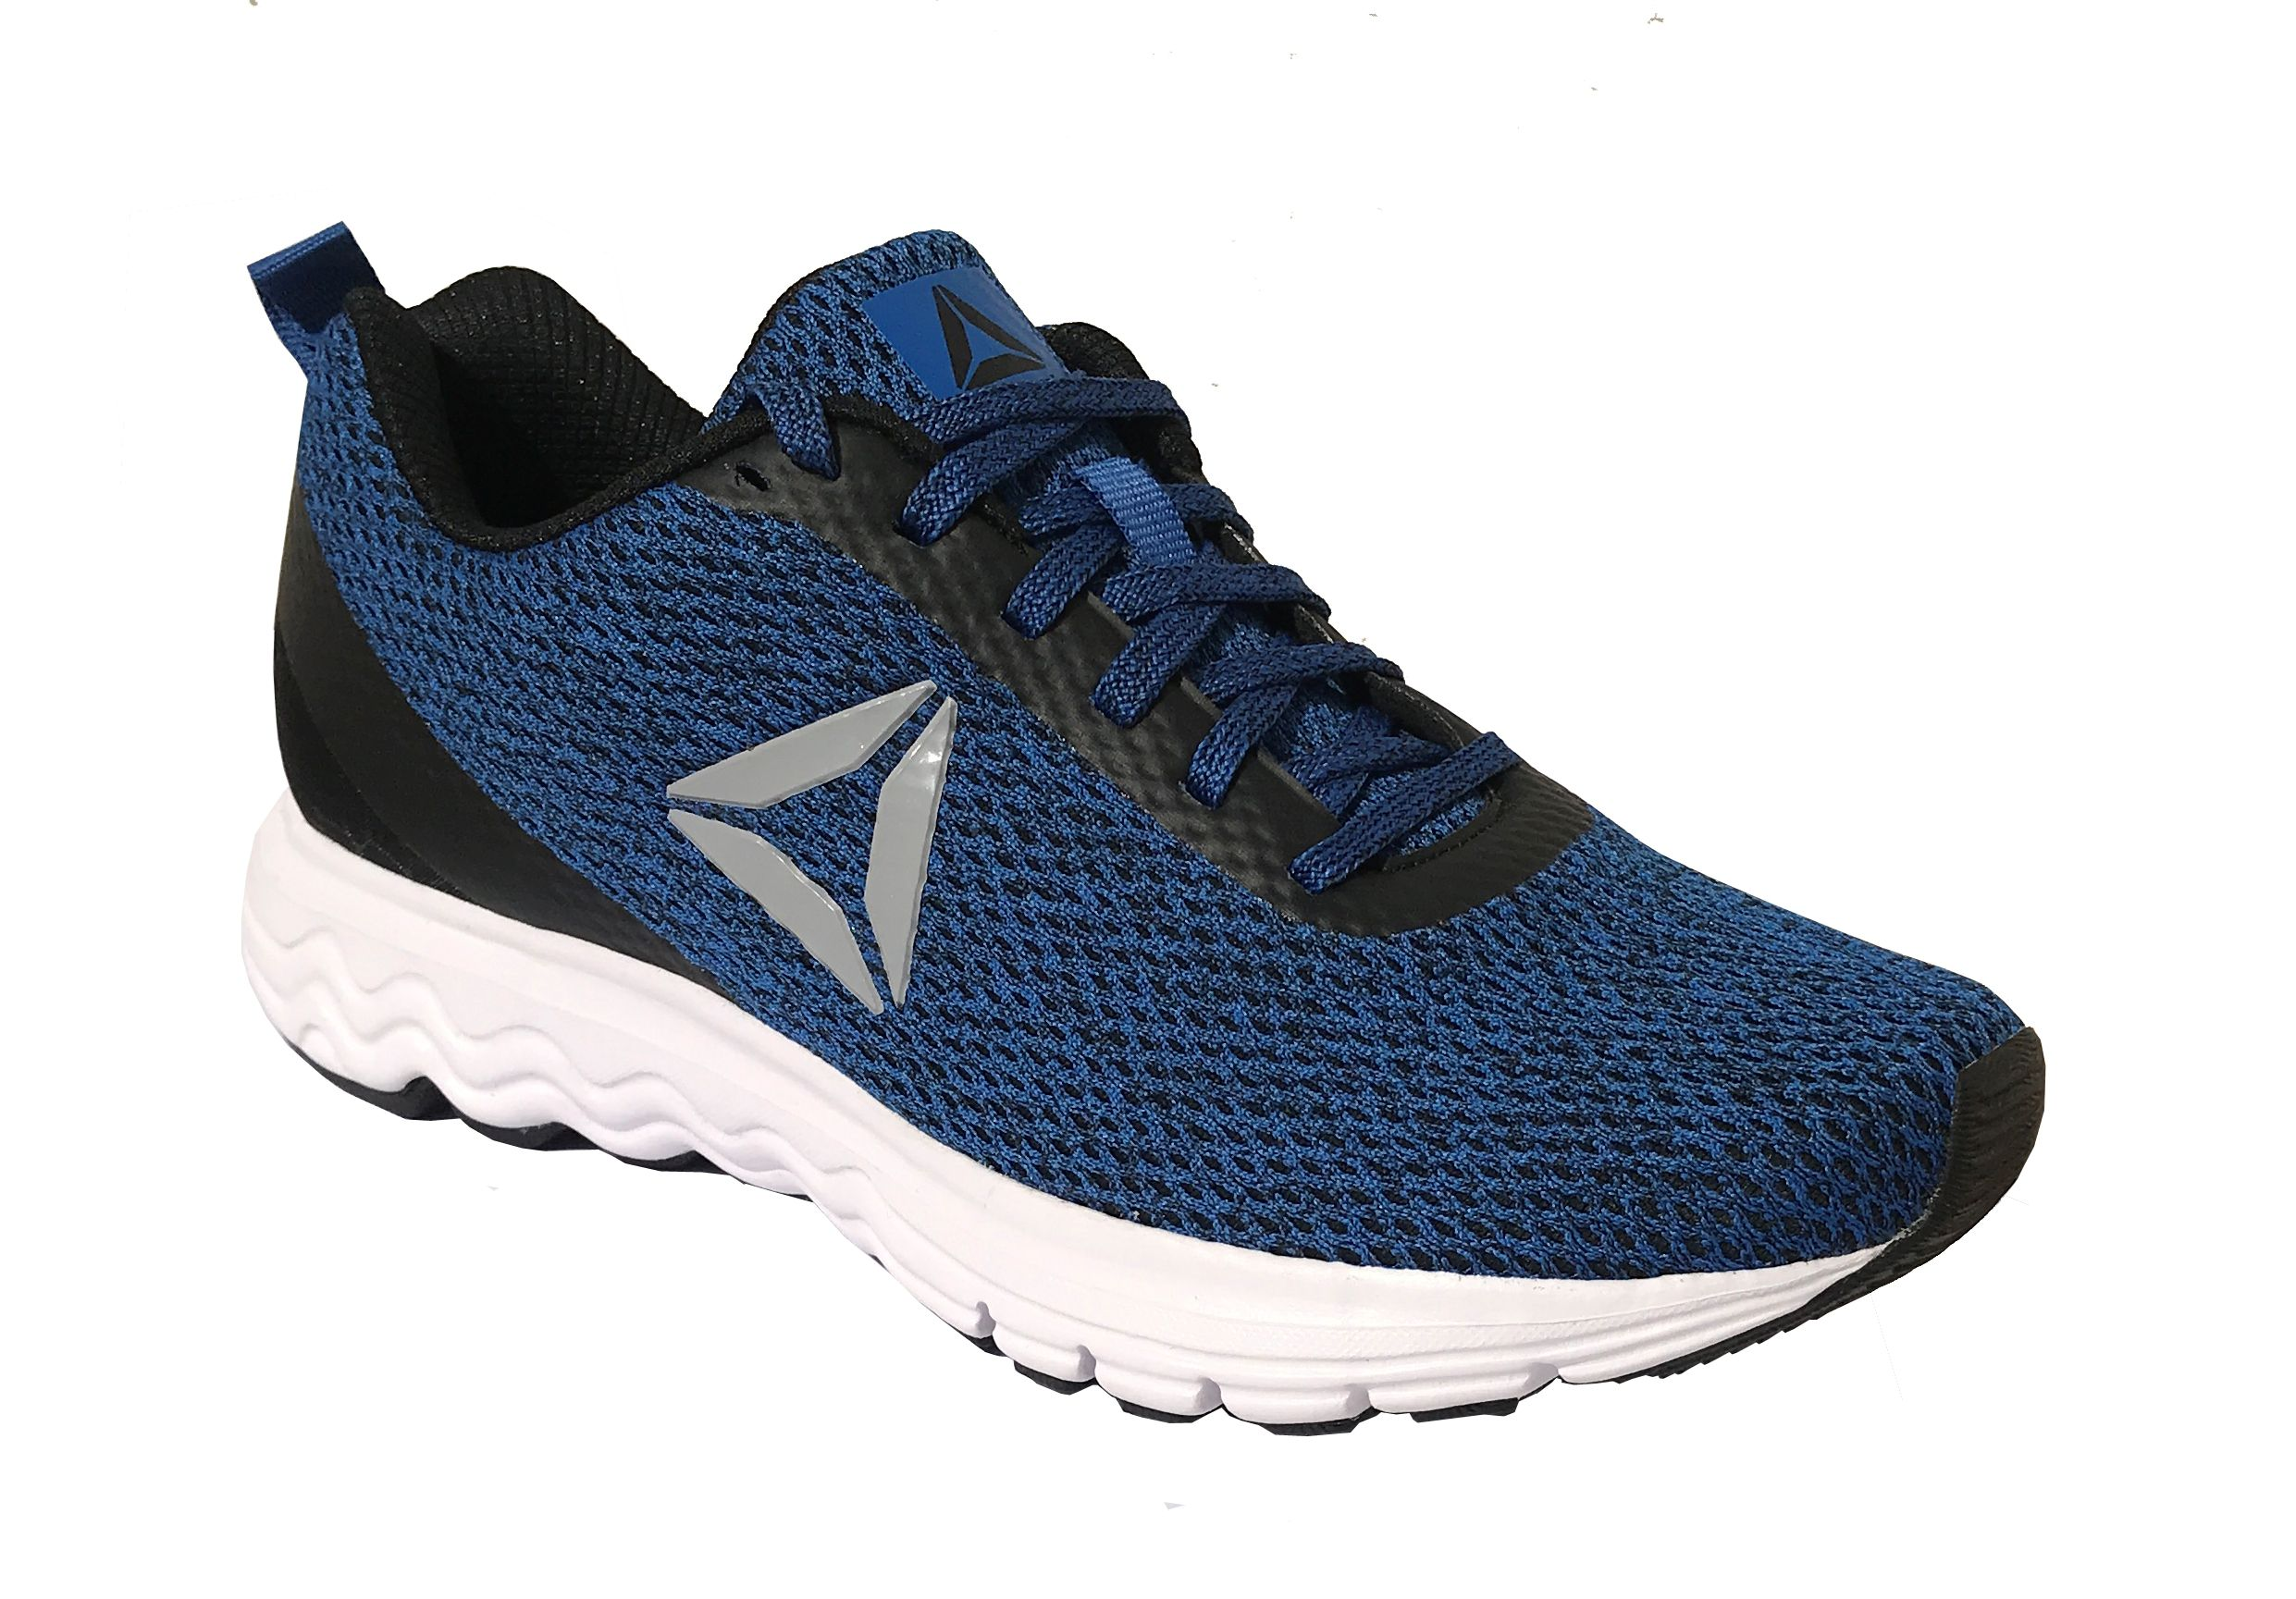 b7dd3b45c28 Reebok Zoom Runner Men s Blue Running Shoes - Buy Reebok Zoom Runner Men s  Blue Running Shoes Online at Best Prices in India on Snapdeal